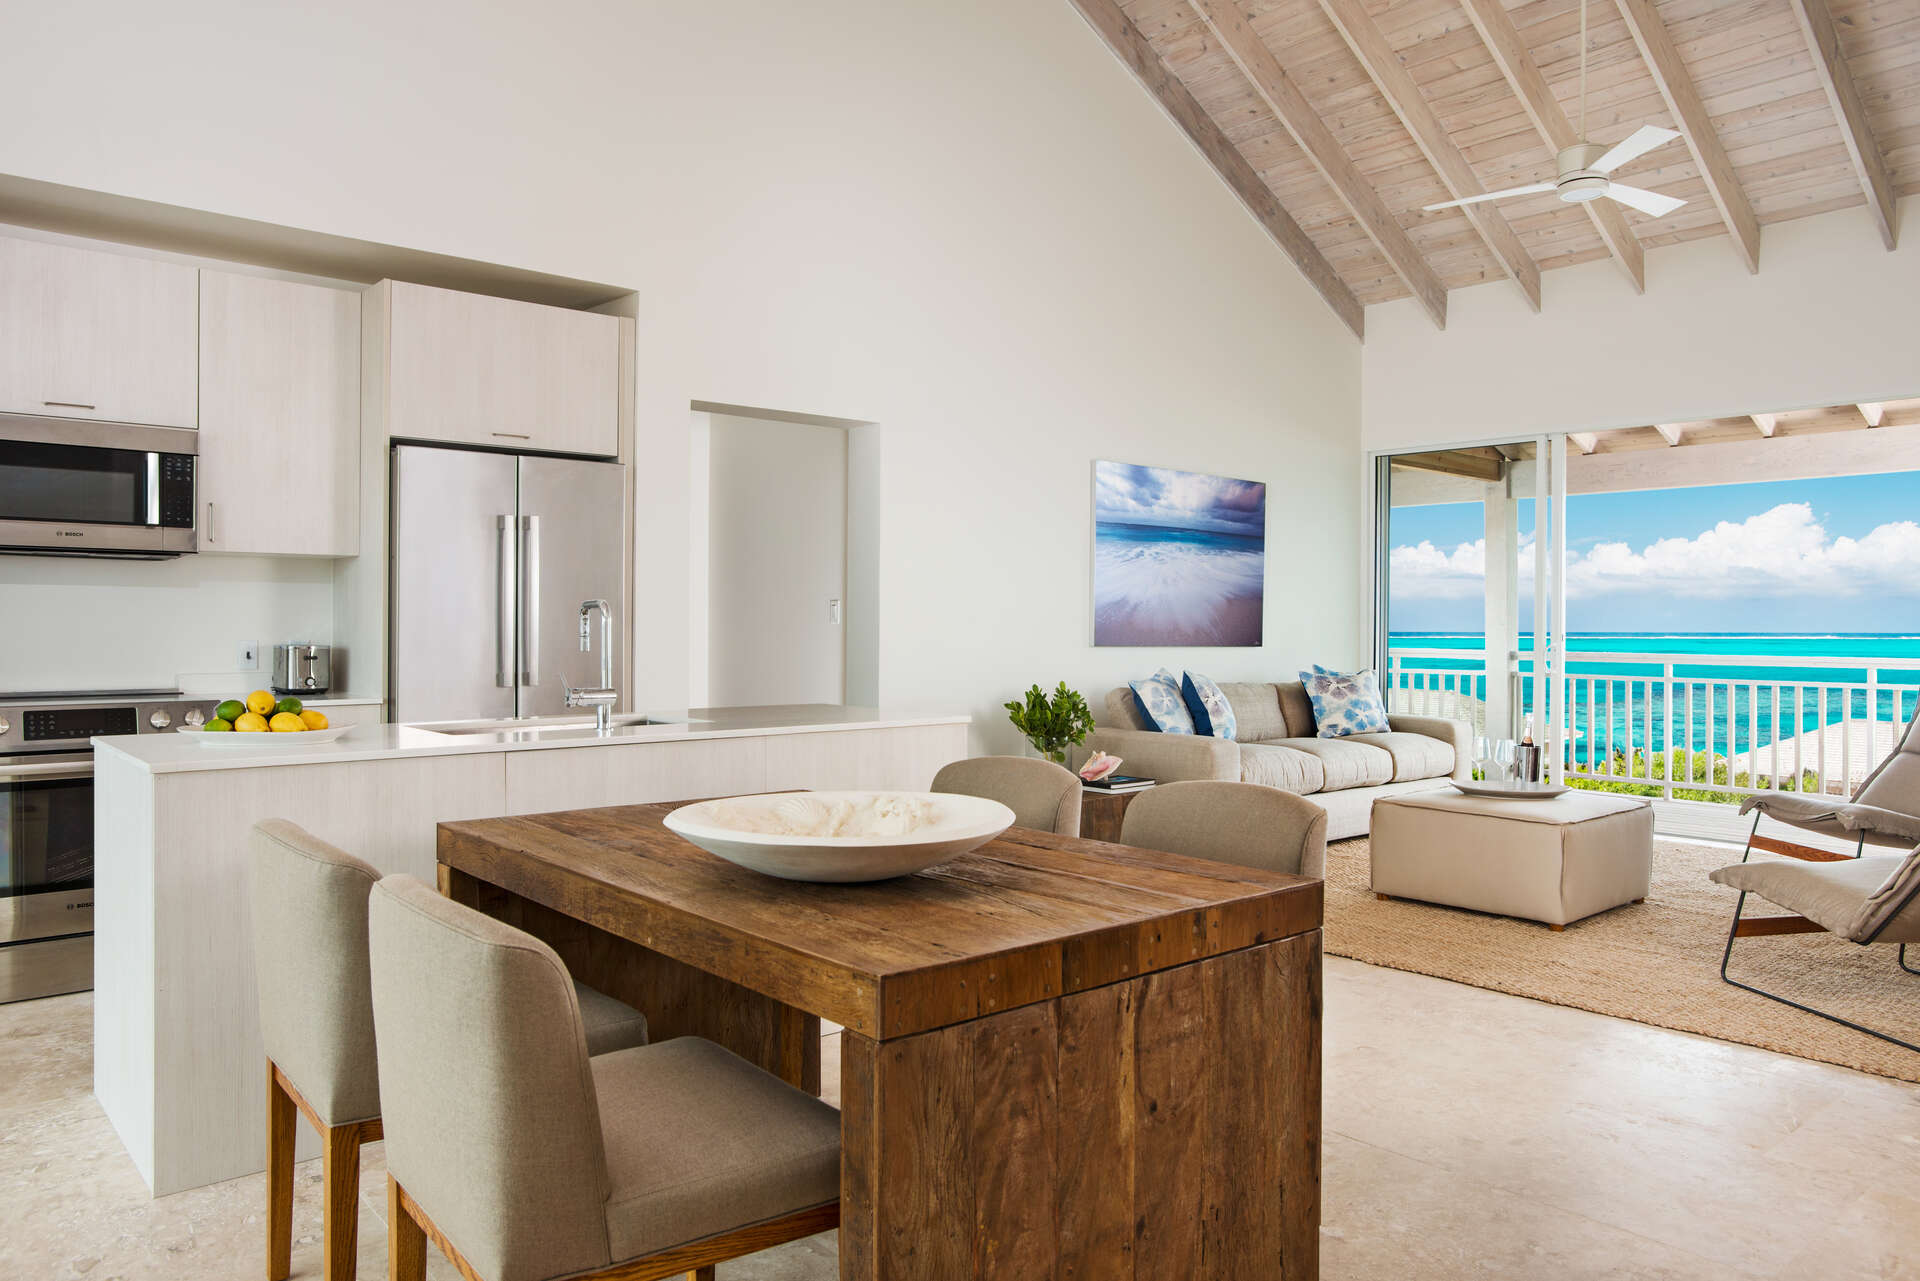 Luxury villa rentals caribbean - Turks and caicos - South caicos - Sailrock resort - Ridgetop 2 BDM - Image 1/14